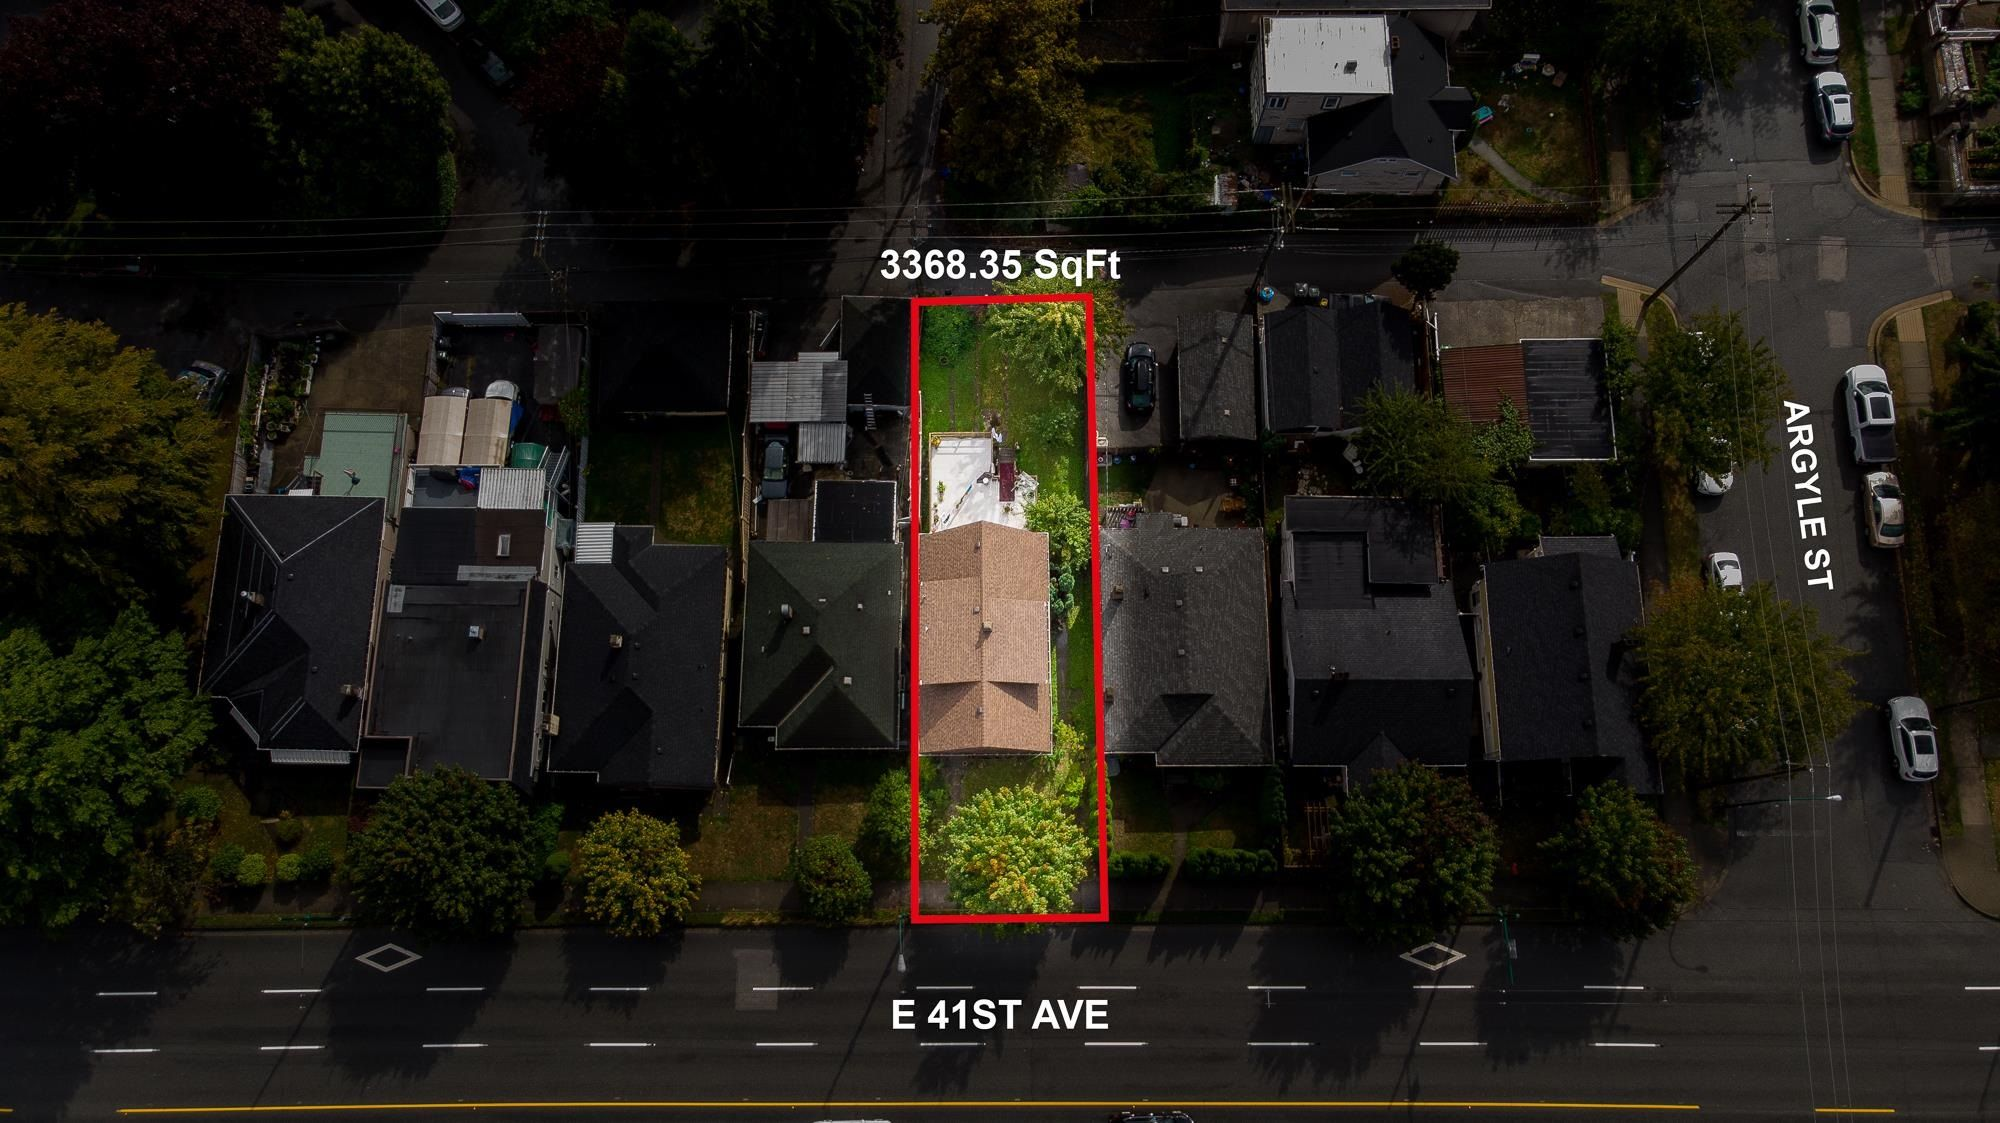 Main Photo: 1722 E 41ST Avenue in Vancouver: Killarney VE House for sale (Vancouver East)  : MLS®# R2623937